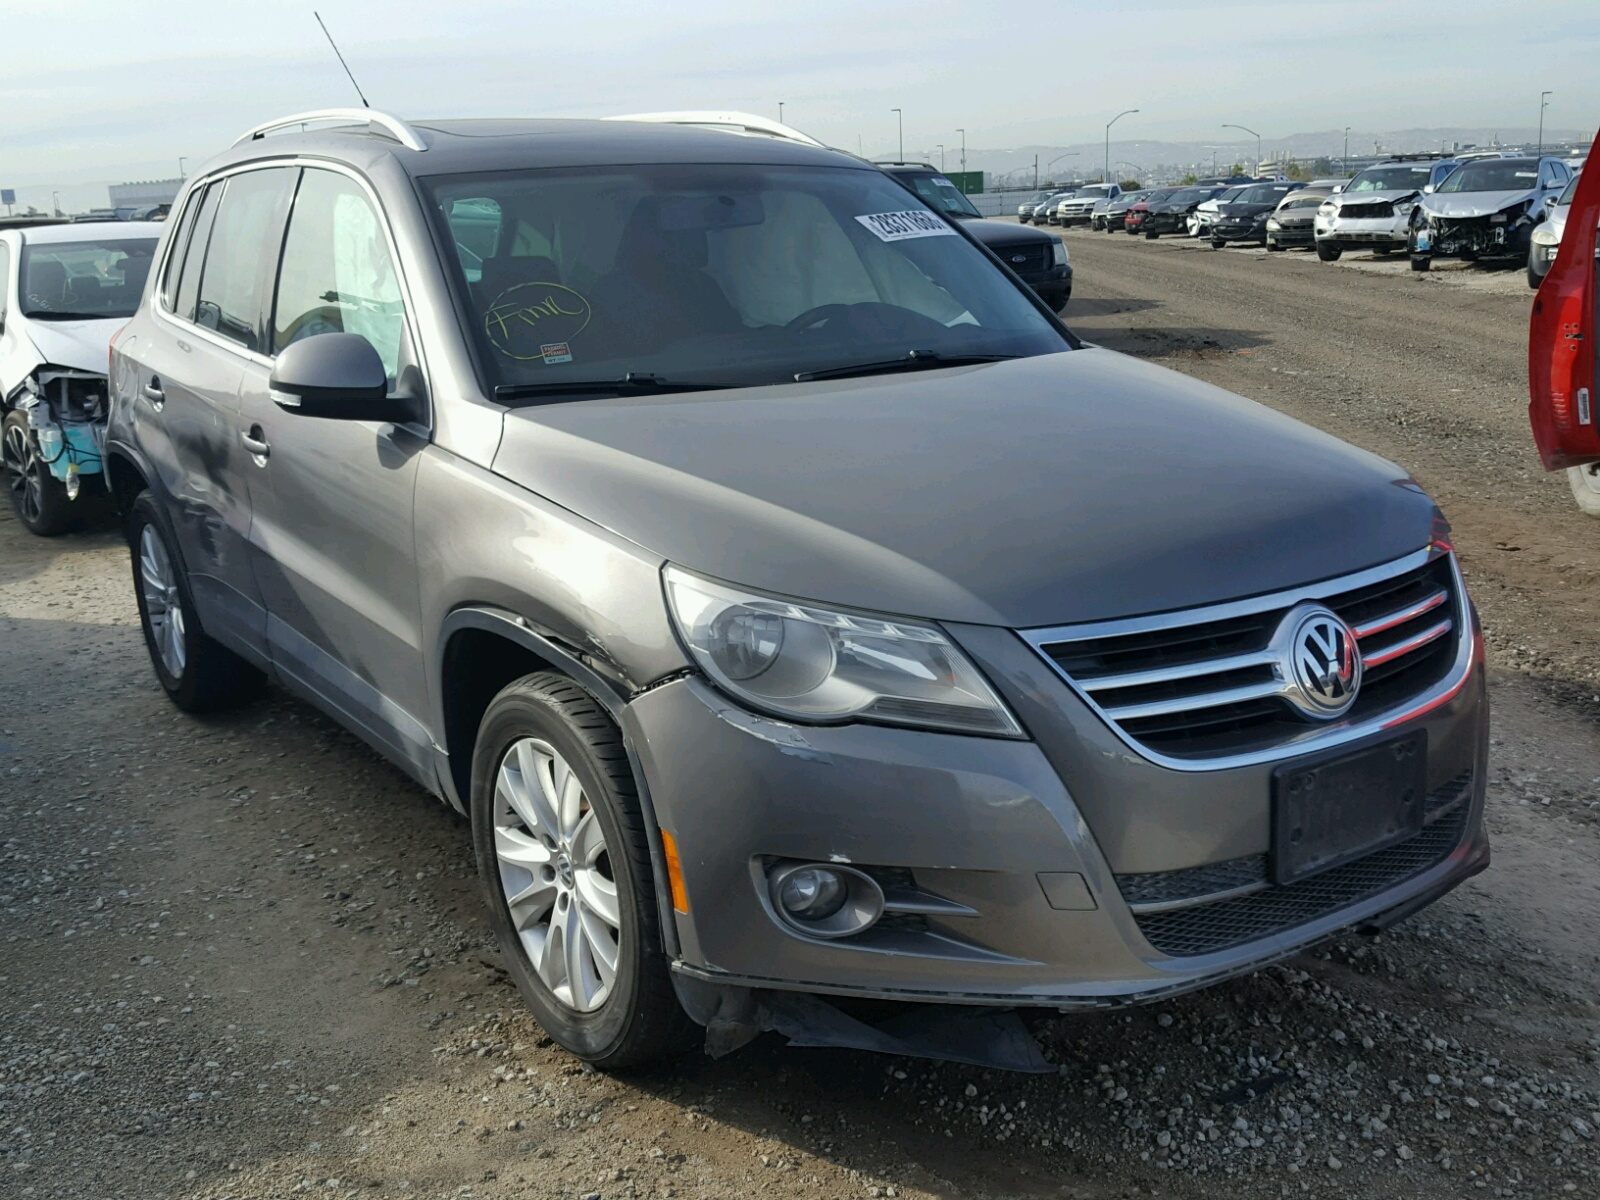 auctions lot vin san certificate auction online salvage en s volkswagen auto view copart tiguan diego on left ca carfinder ended